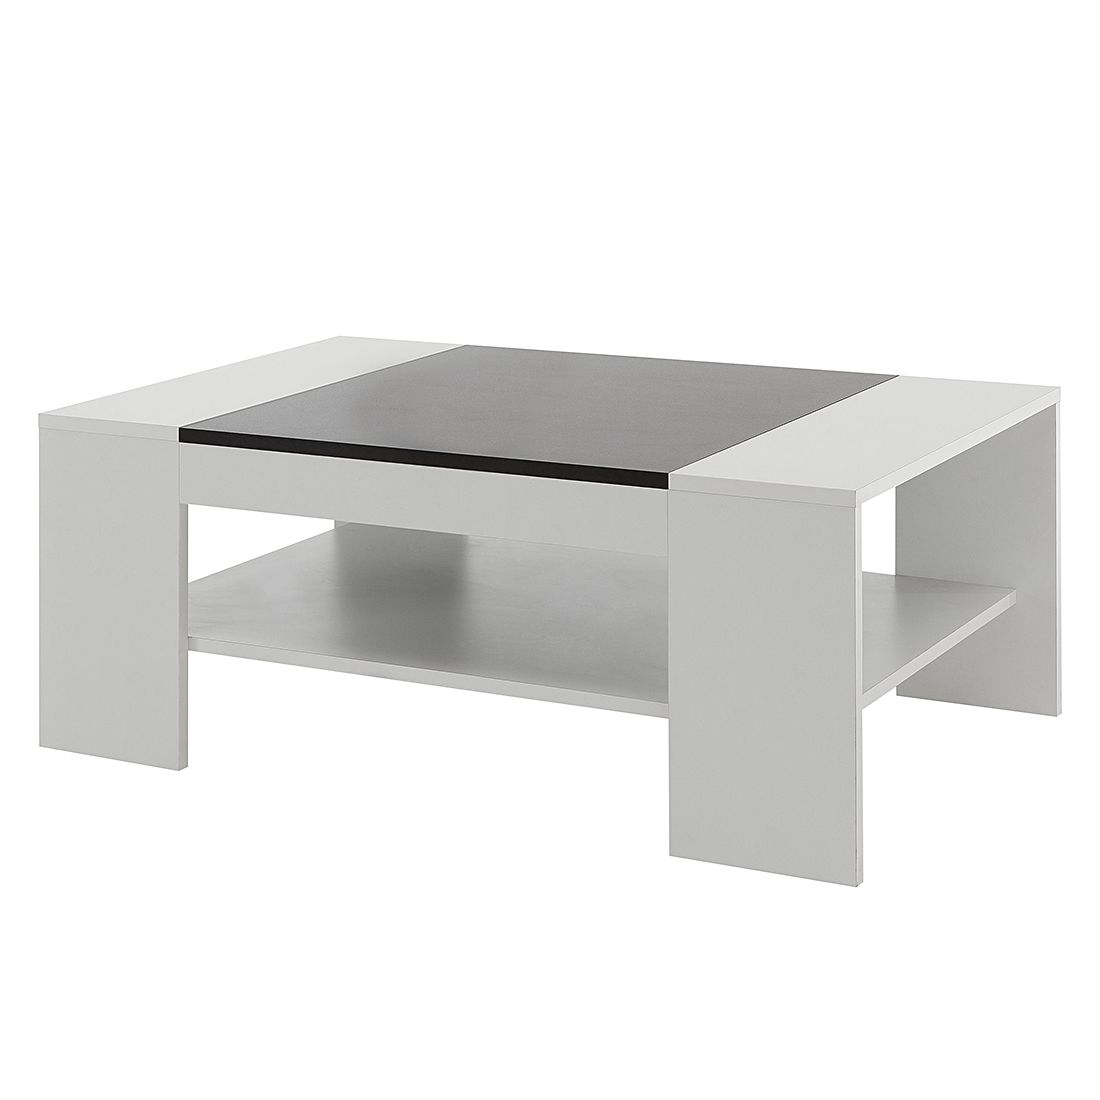 Table basse Hays - Blanc / Noir, mooved